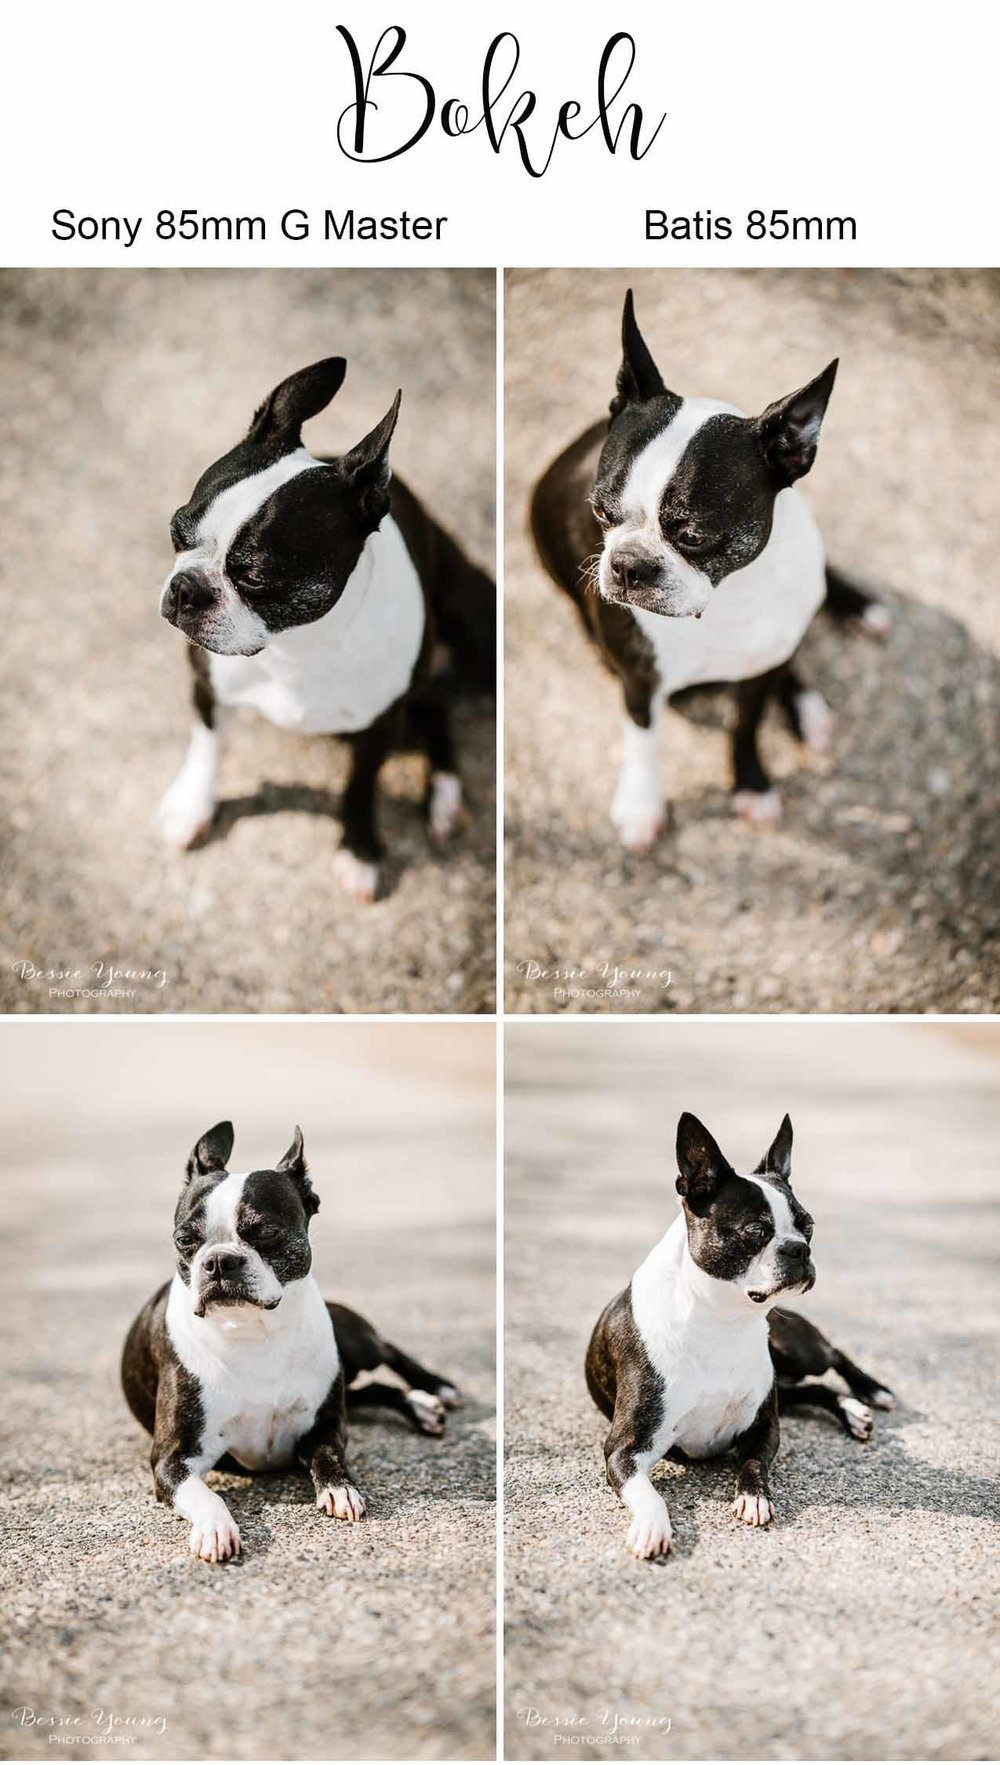 Batis 85mm vs Sony 85mm G master lens comparison by Bessie Young Photography Bokeh Comparison.jpg